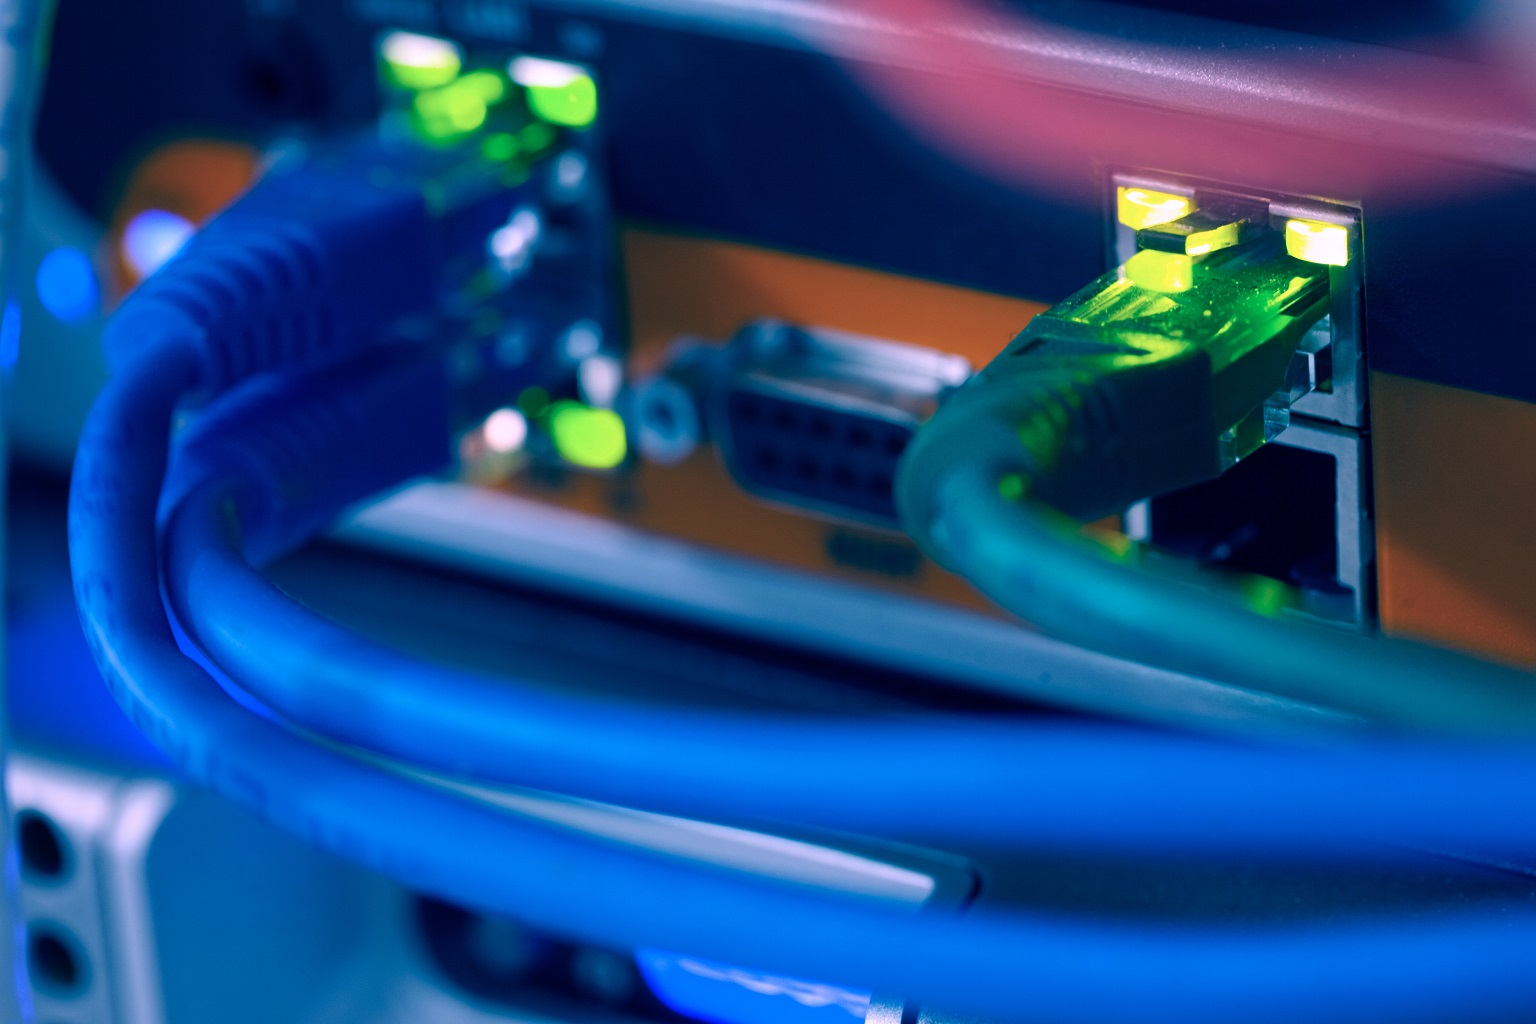 European Commission approves nationwide broadband upgrade